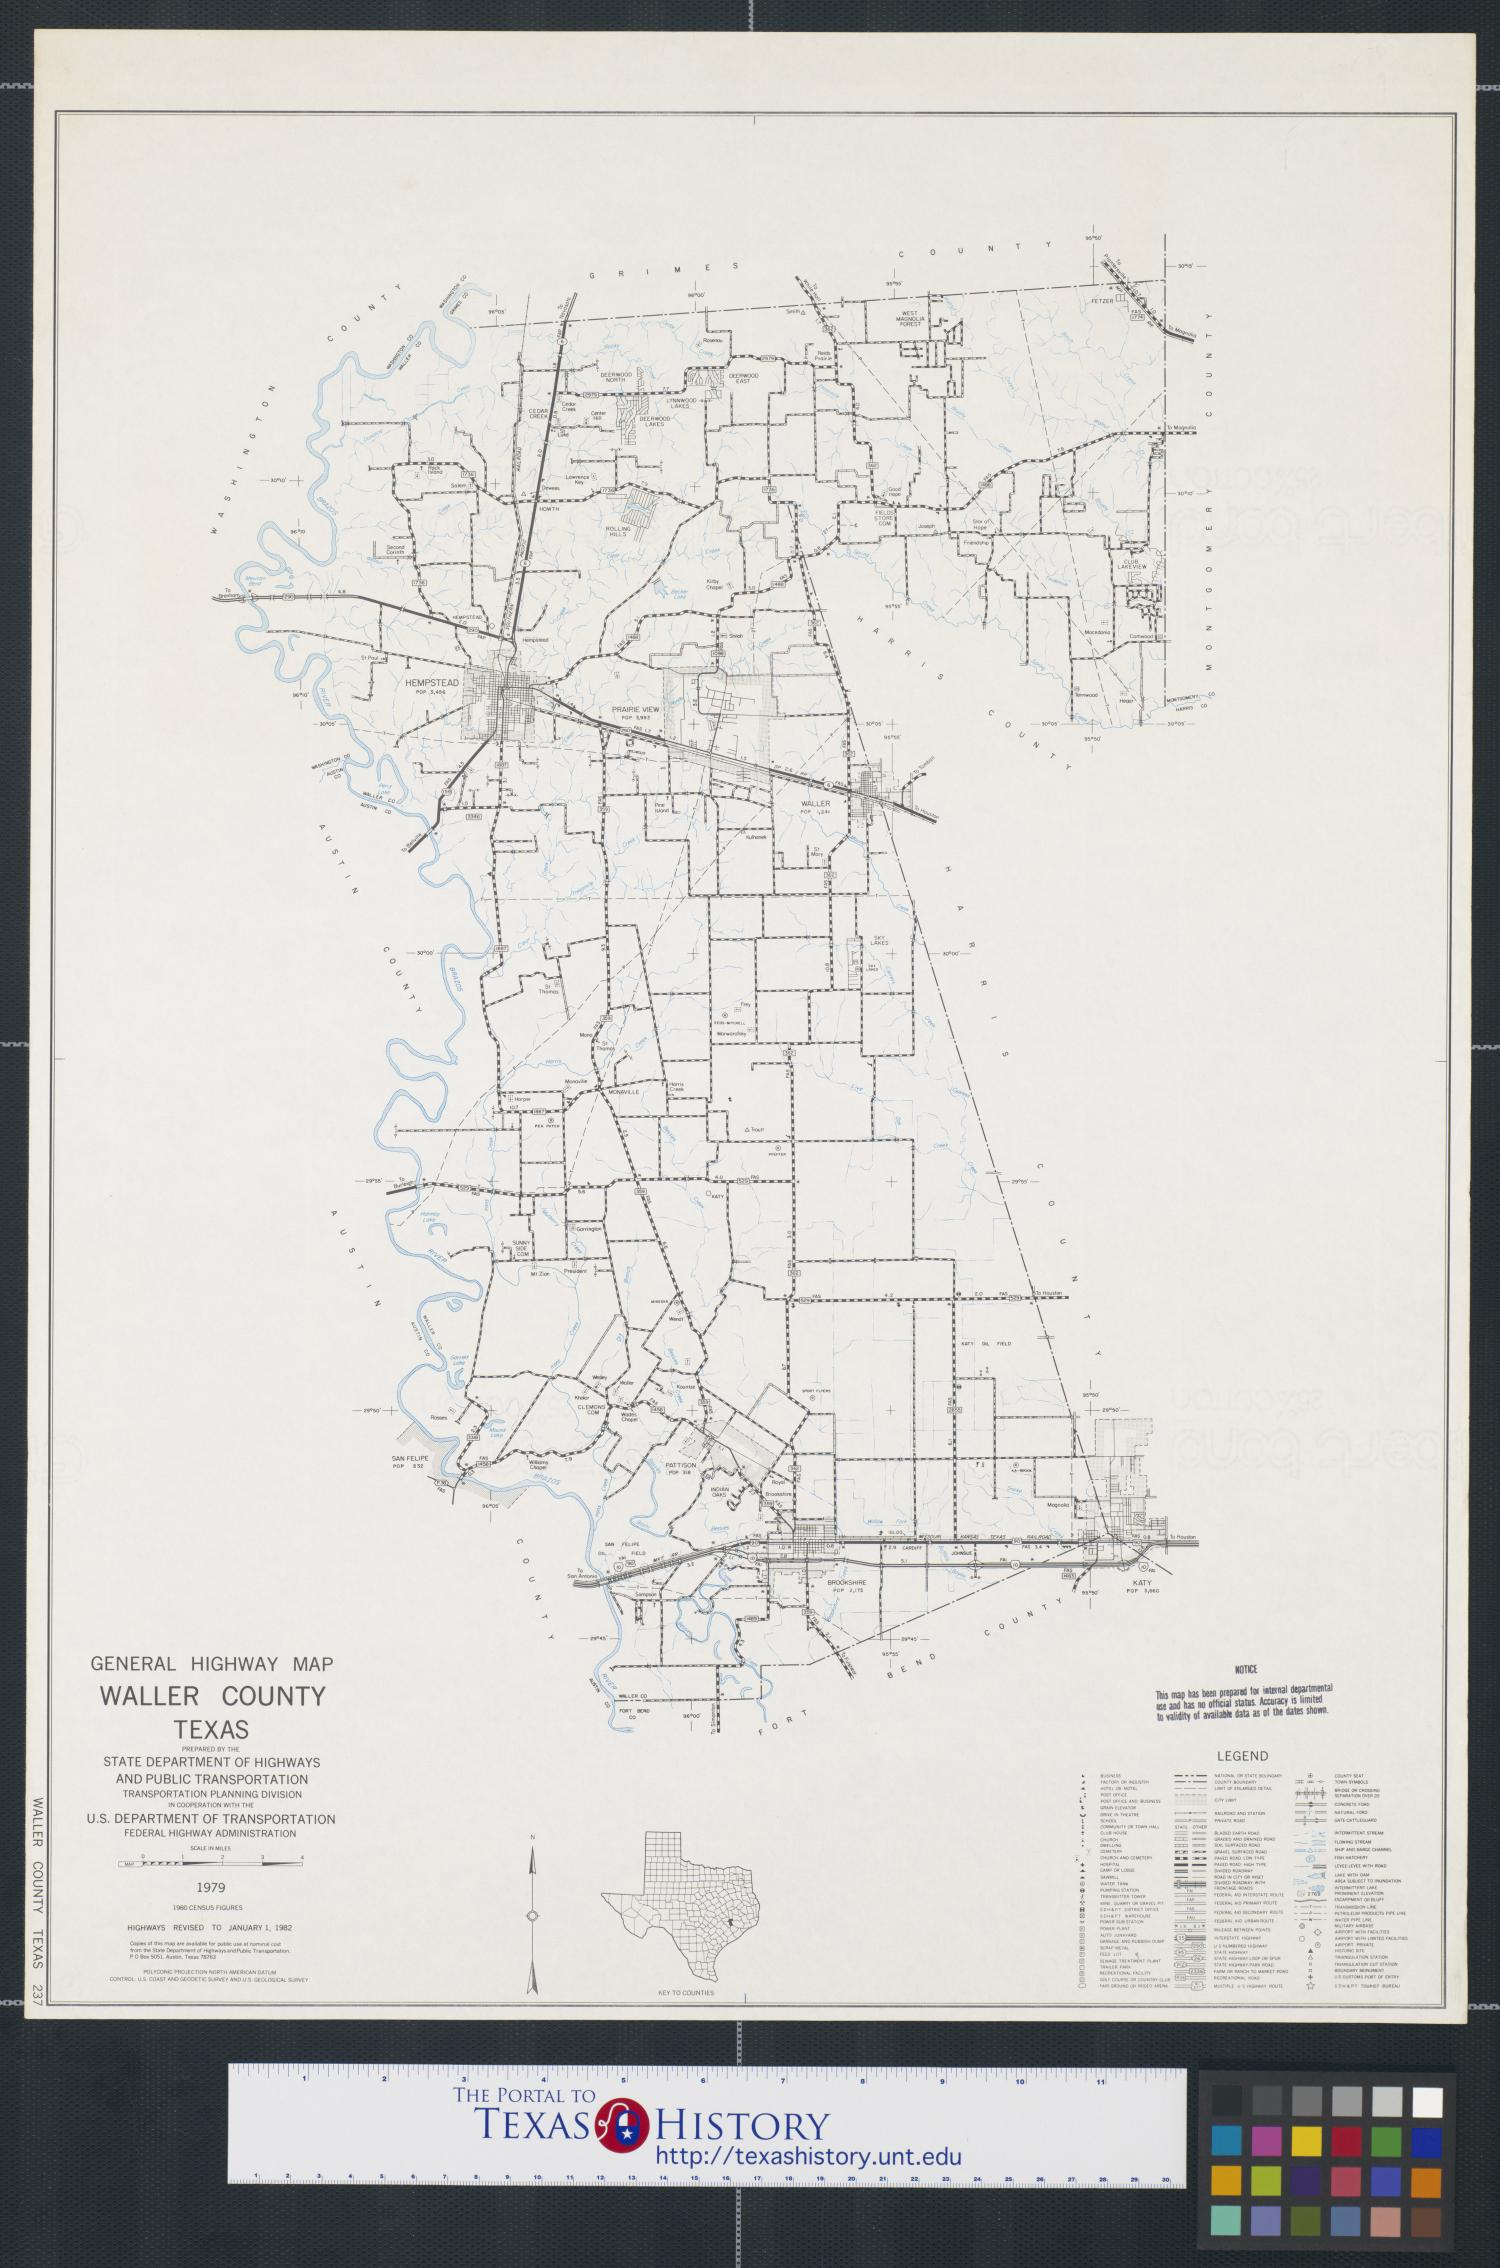 General Highway Map Waller County Texas The Portal To Texas History - Waller tx map us